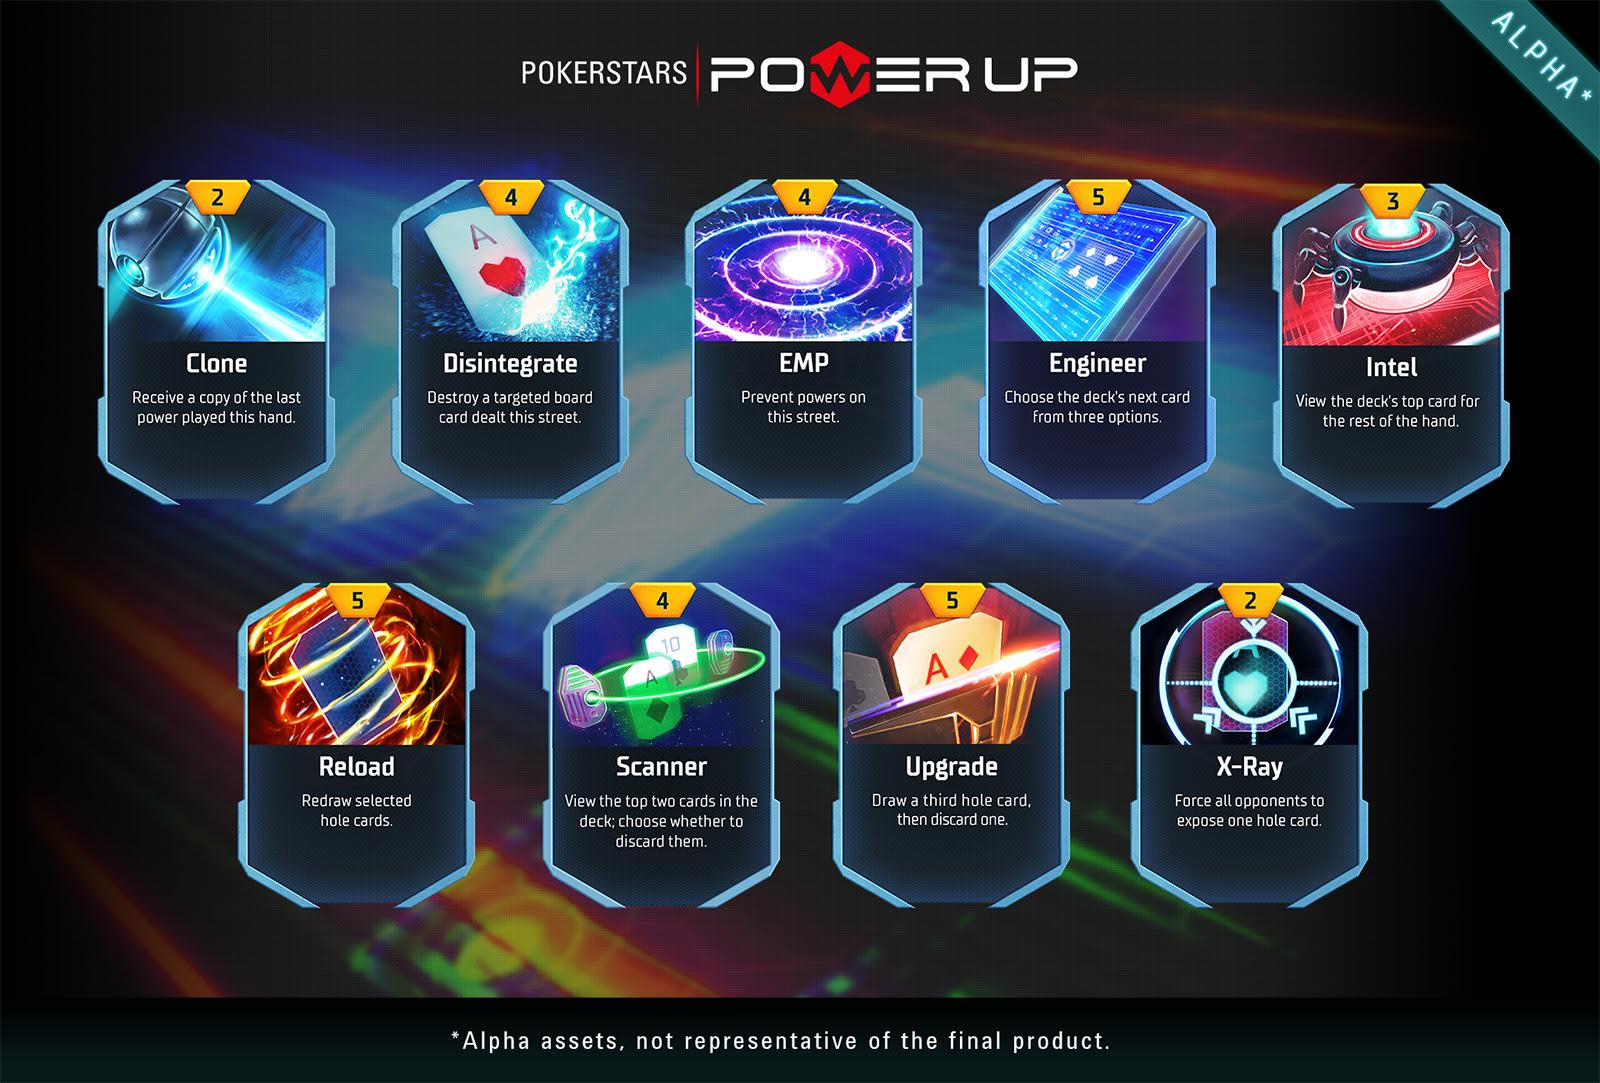 Pokerstars Power Up